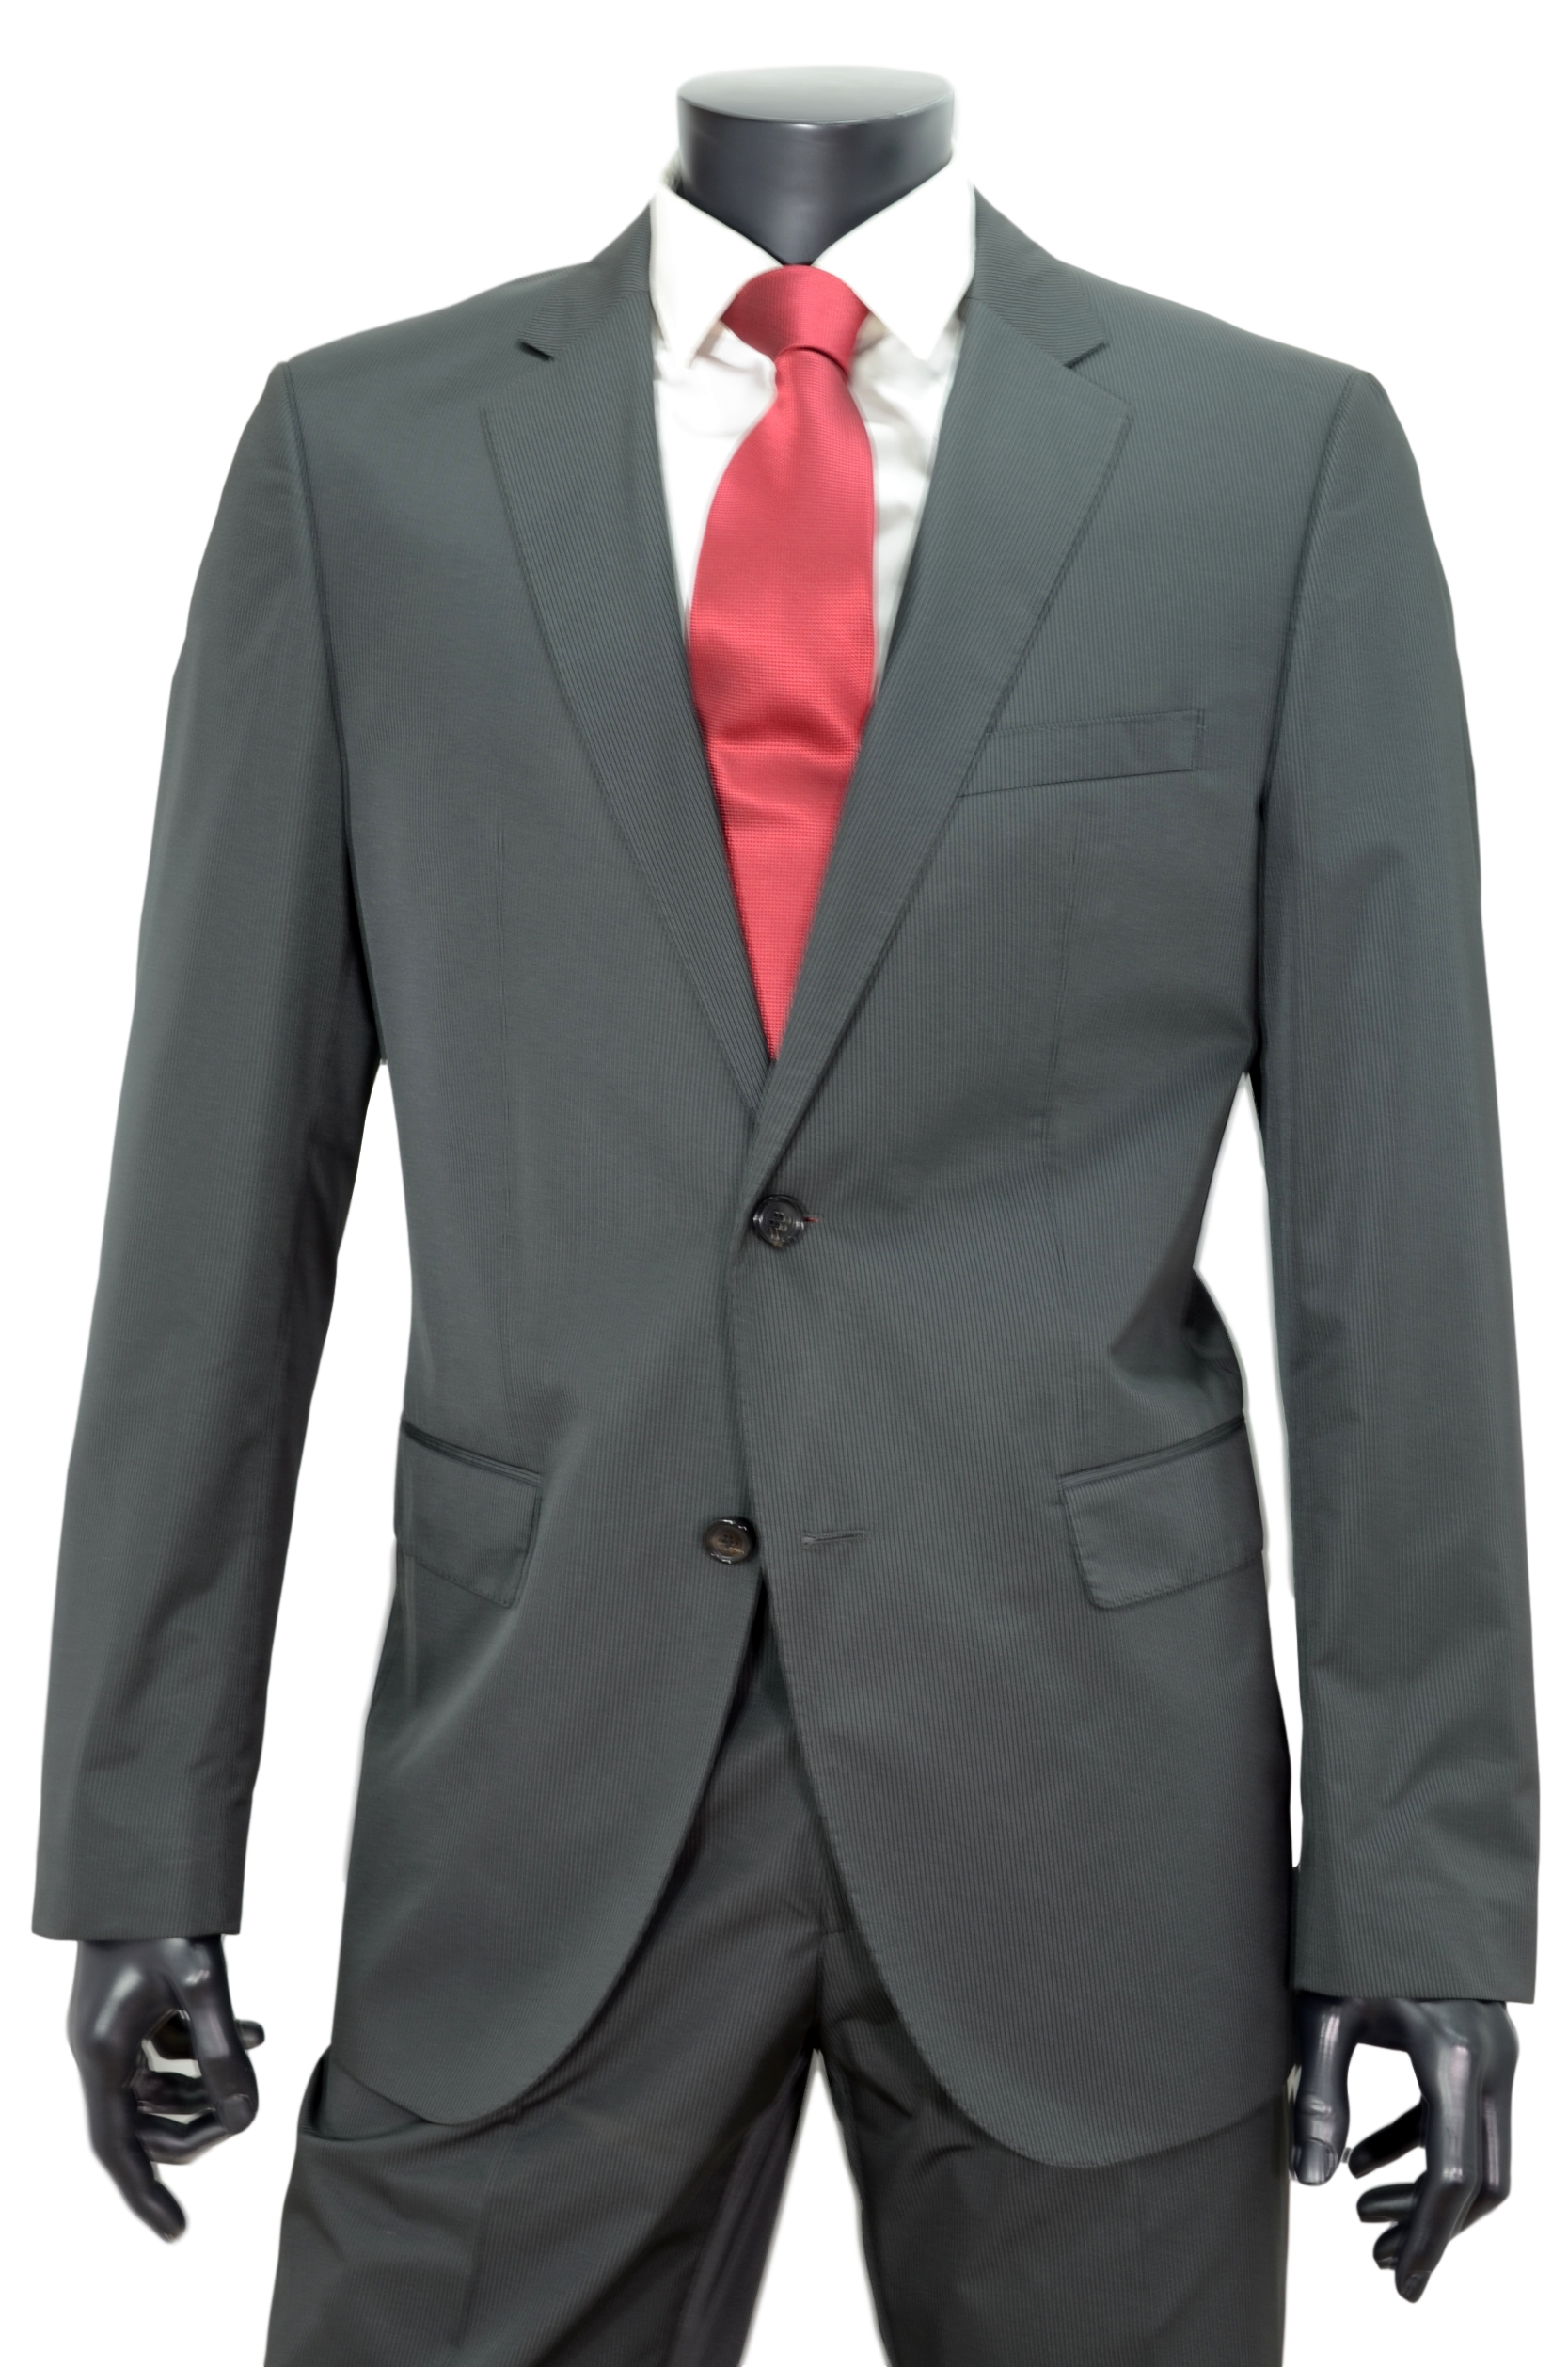 HUGO BOSS ABITO THE JAM/SHARP SLIM FIT COLORE GRIGIO RIGA TG. 50